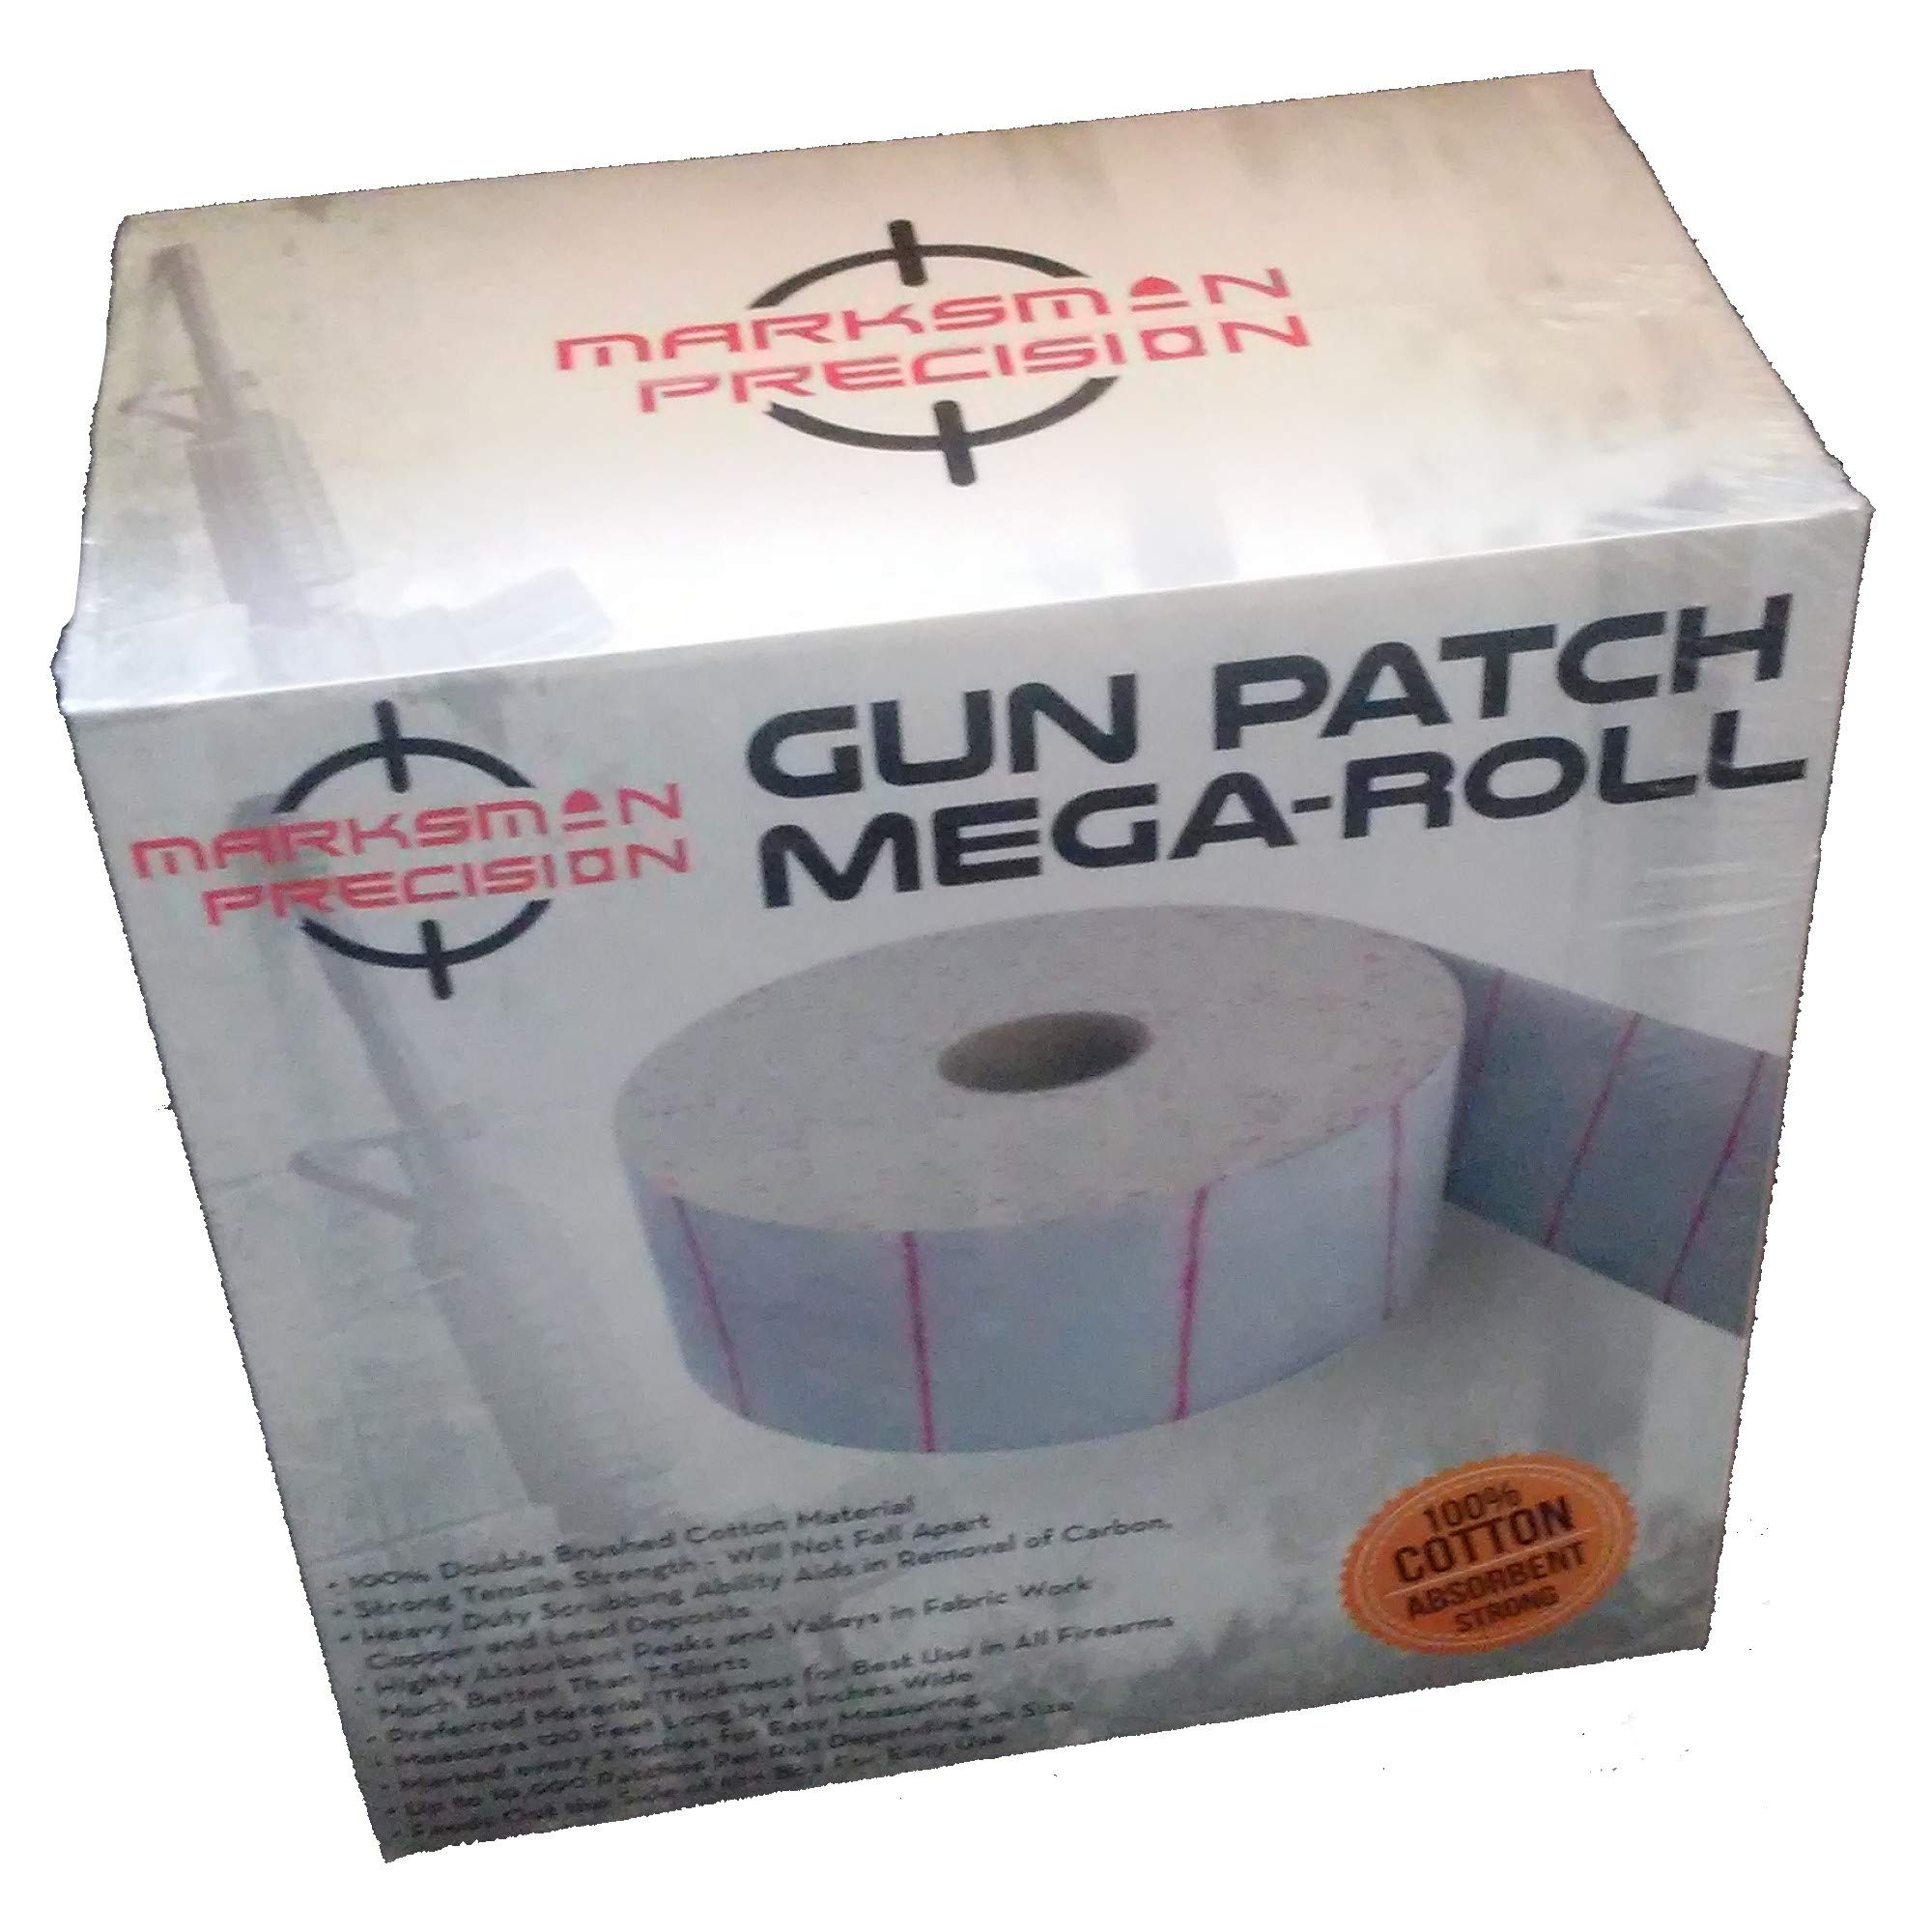 Marksman Precision GUN PATCH MEGA-ROLL | Strong 100% Double Brushed Cotton Cloth |10,000 Absorbent Patches | Cut To Size & Clean - Rifle Handgun Shotgun Black Powder Pistol Revolver | Shooting Hunting by Marksman Precision